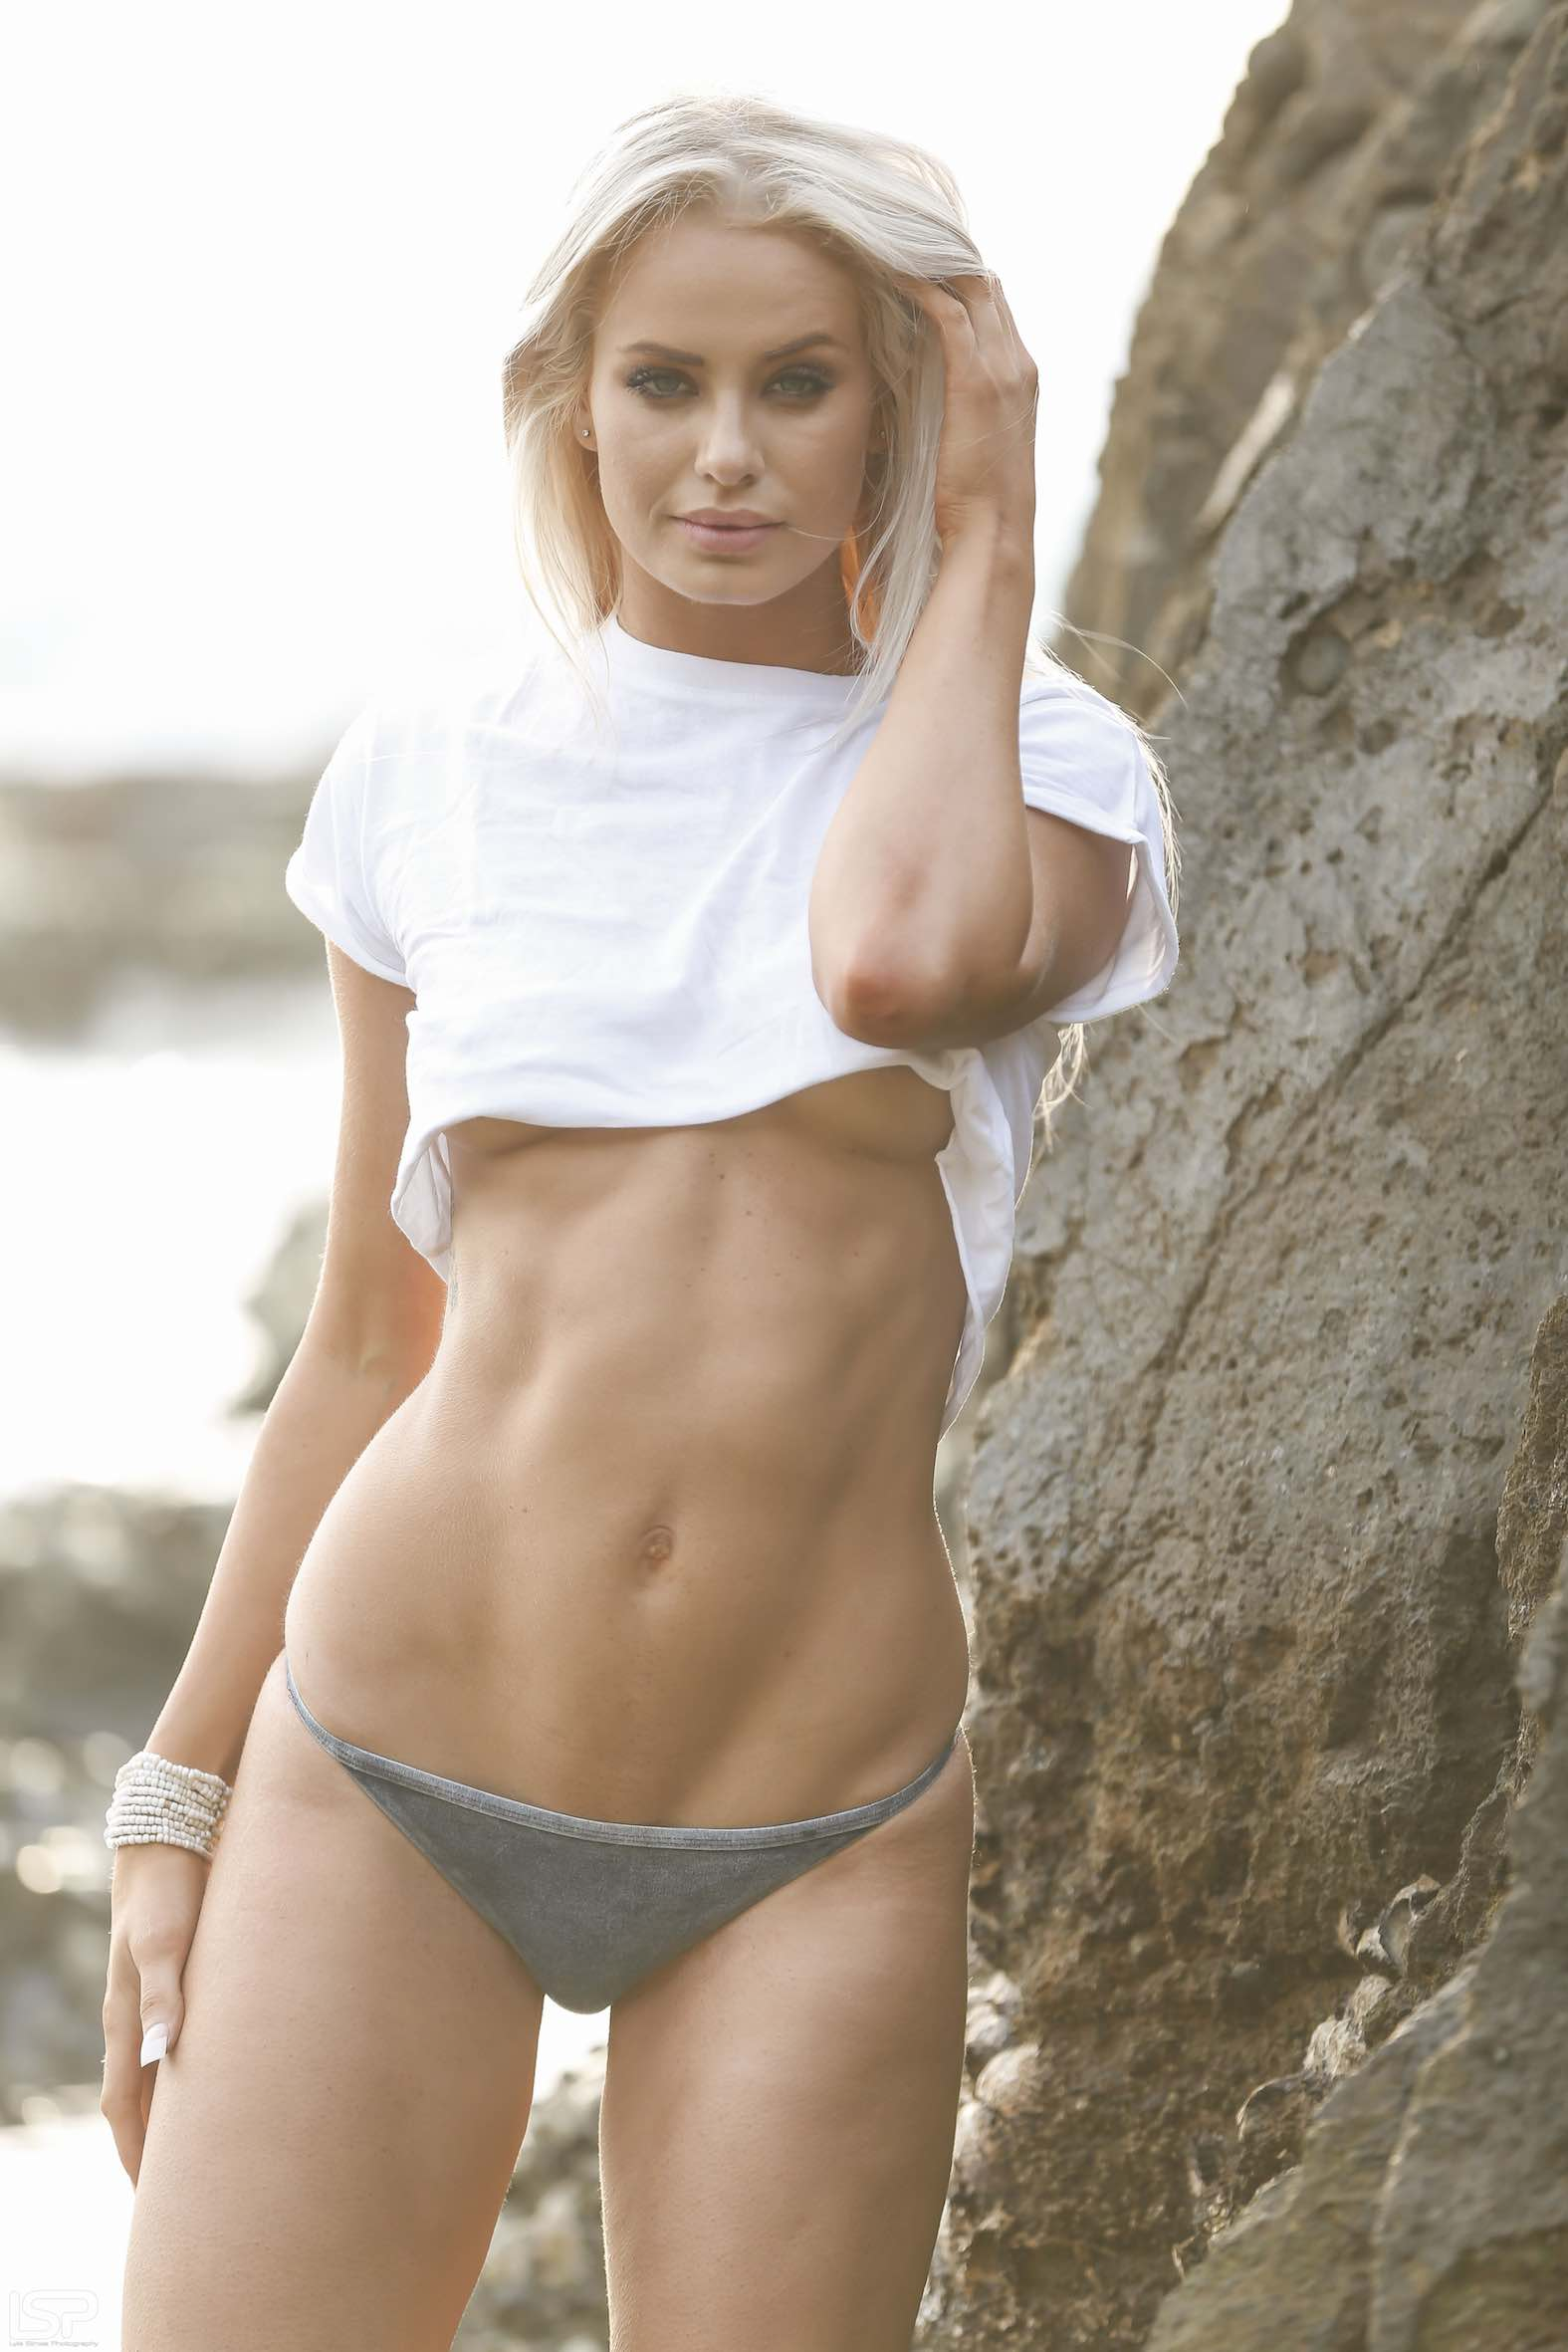 Our South African Babes feature with Amber Elizabeth